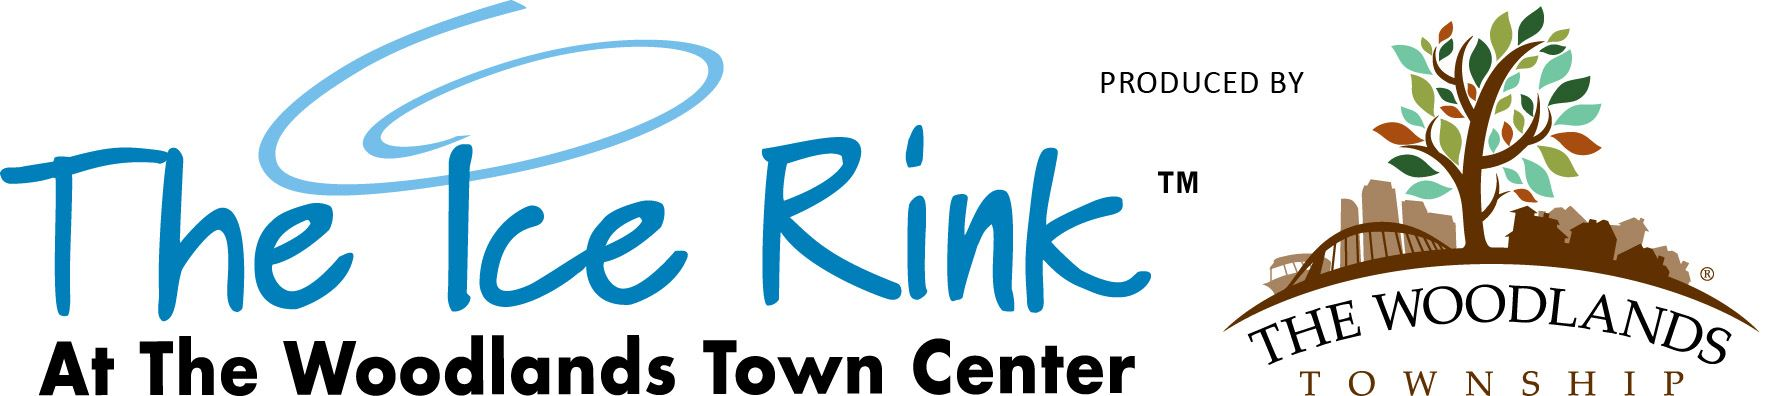 The-Ice-Rink-Logo with Township